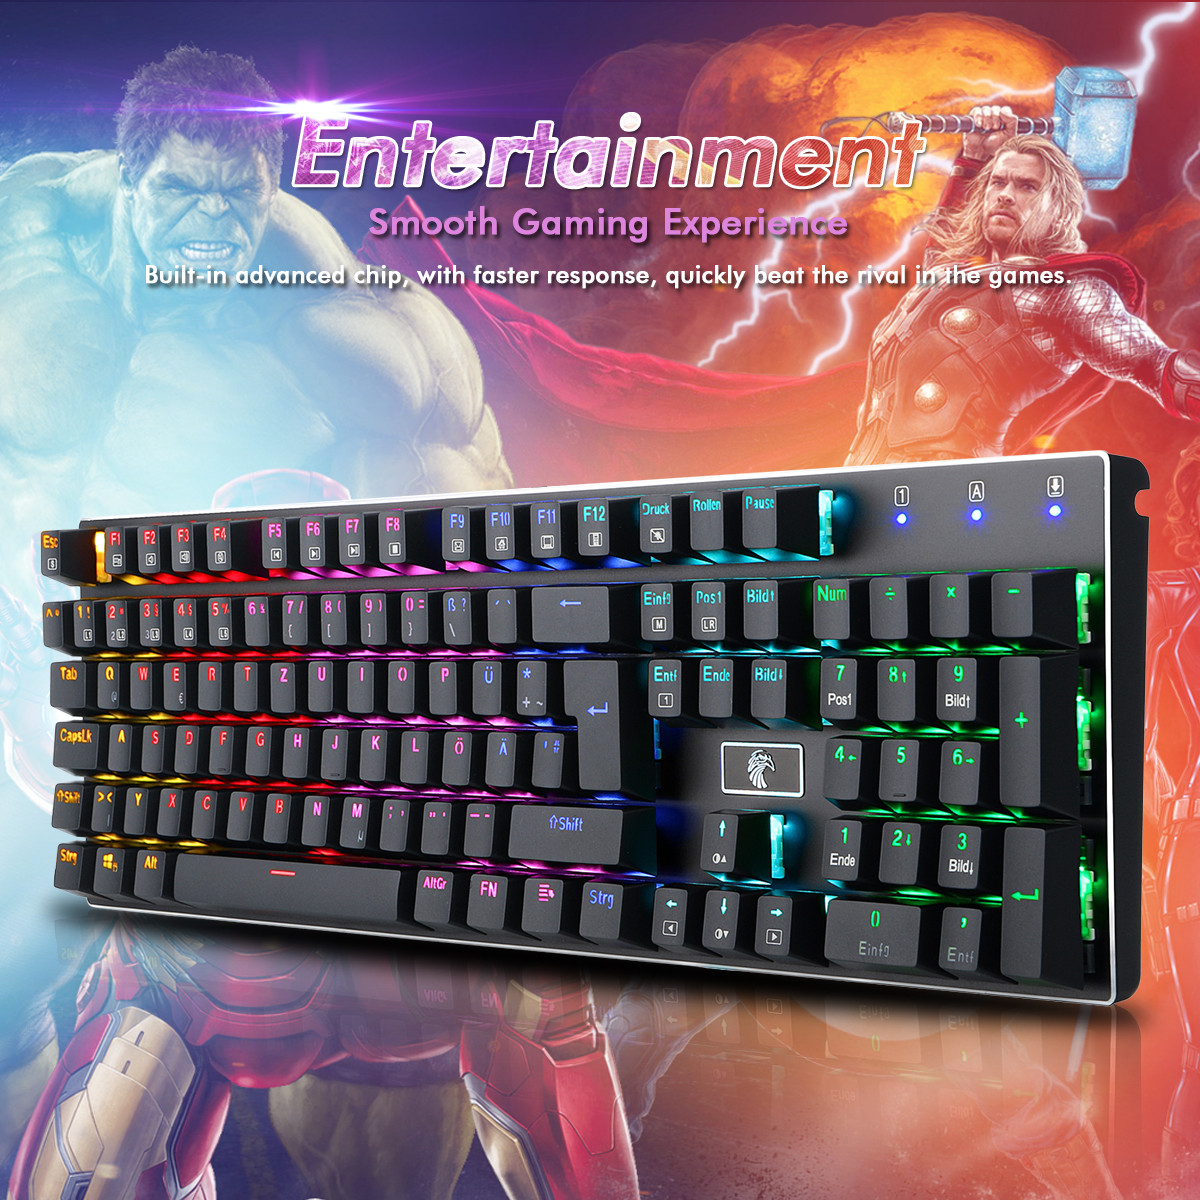 51c71771992 E-YOOSO Ergonomic USB Wired Gaming Mechanical Keyboard 105 Keys Cap Metal  Panel with Colorful